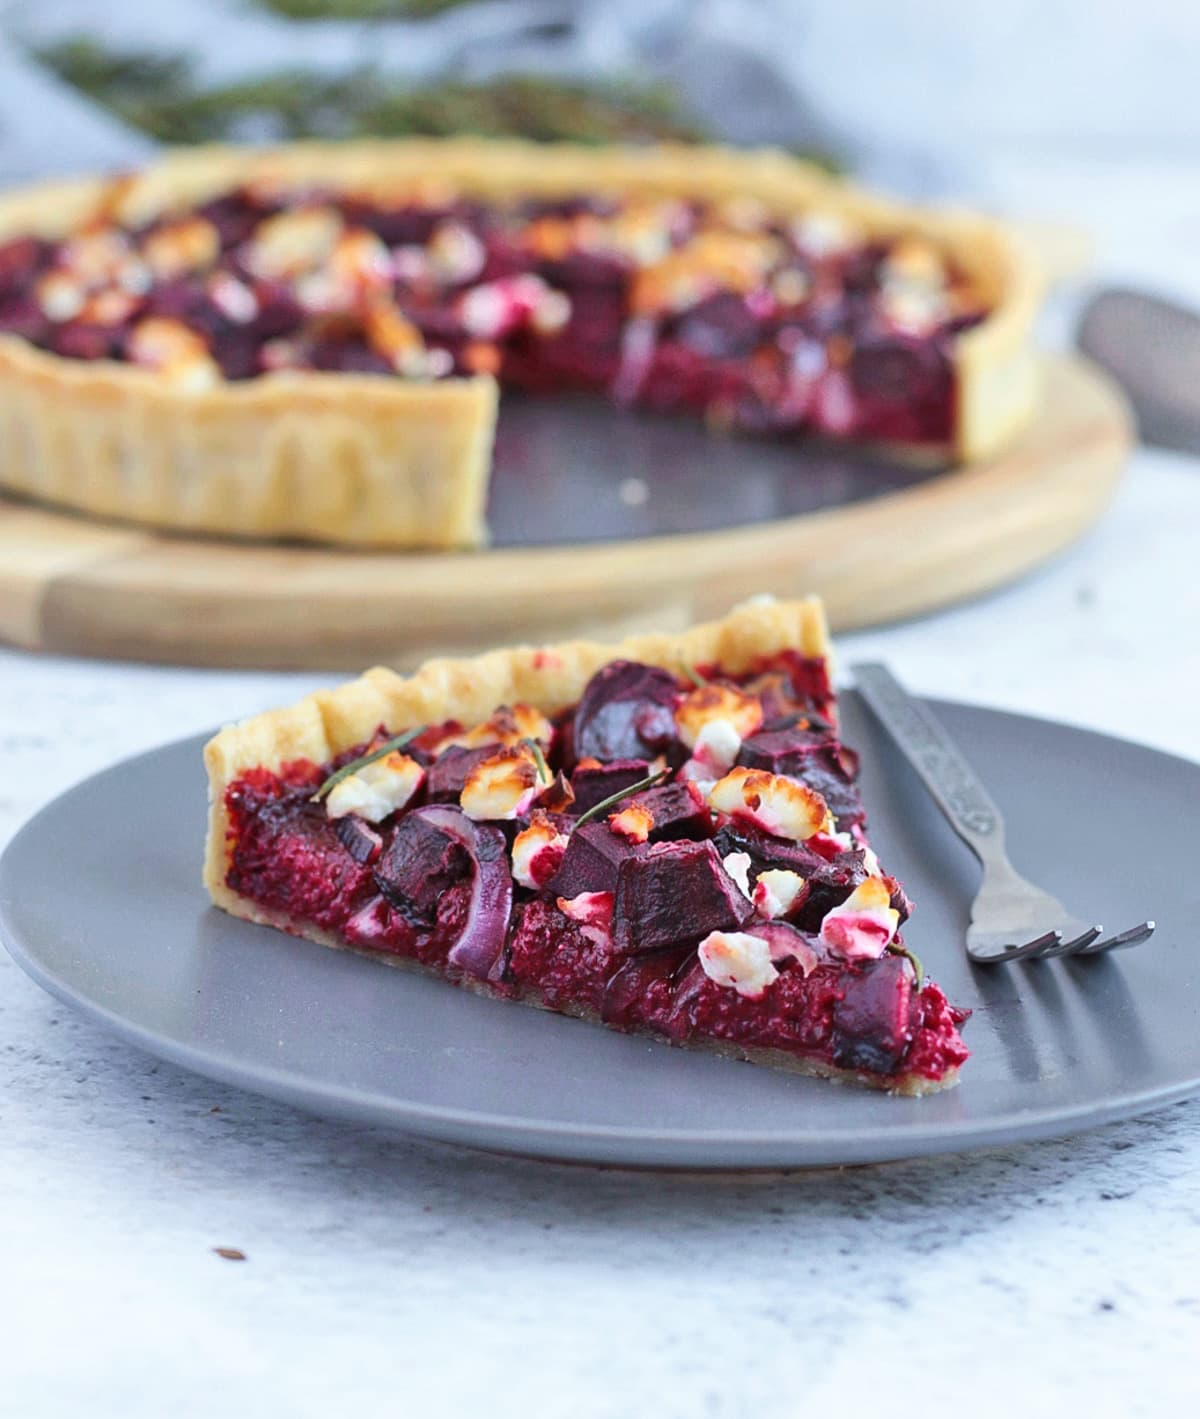 A slice of tart on a grey plate